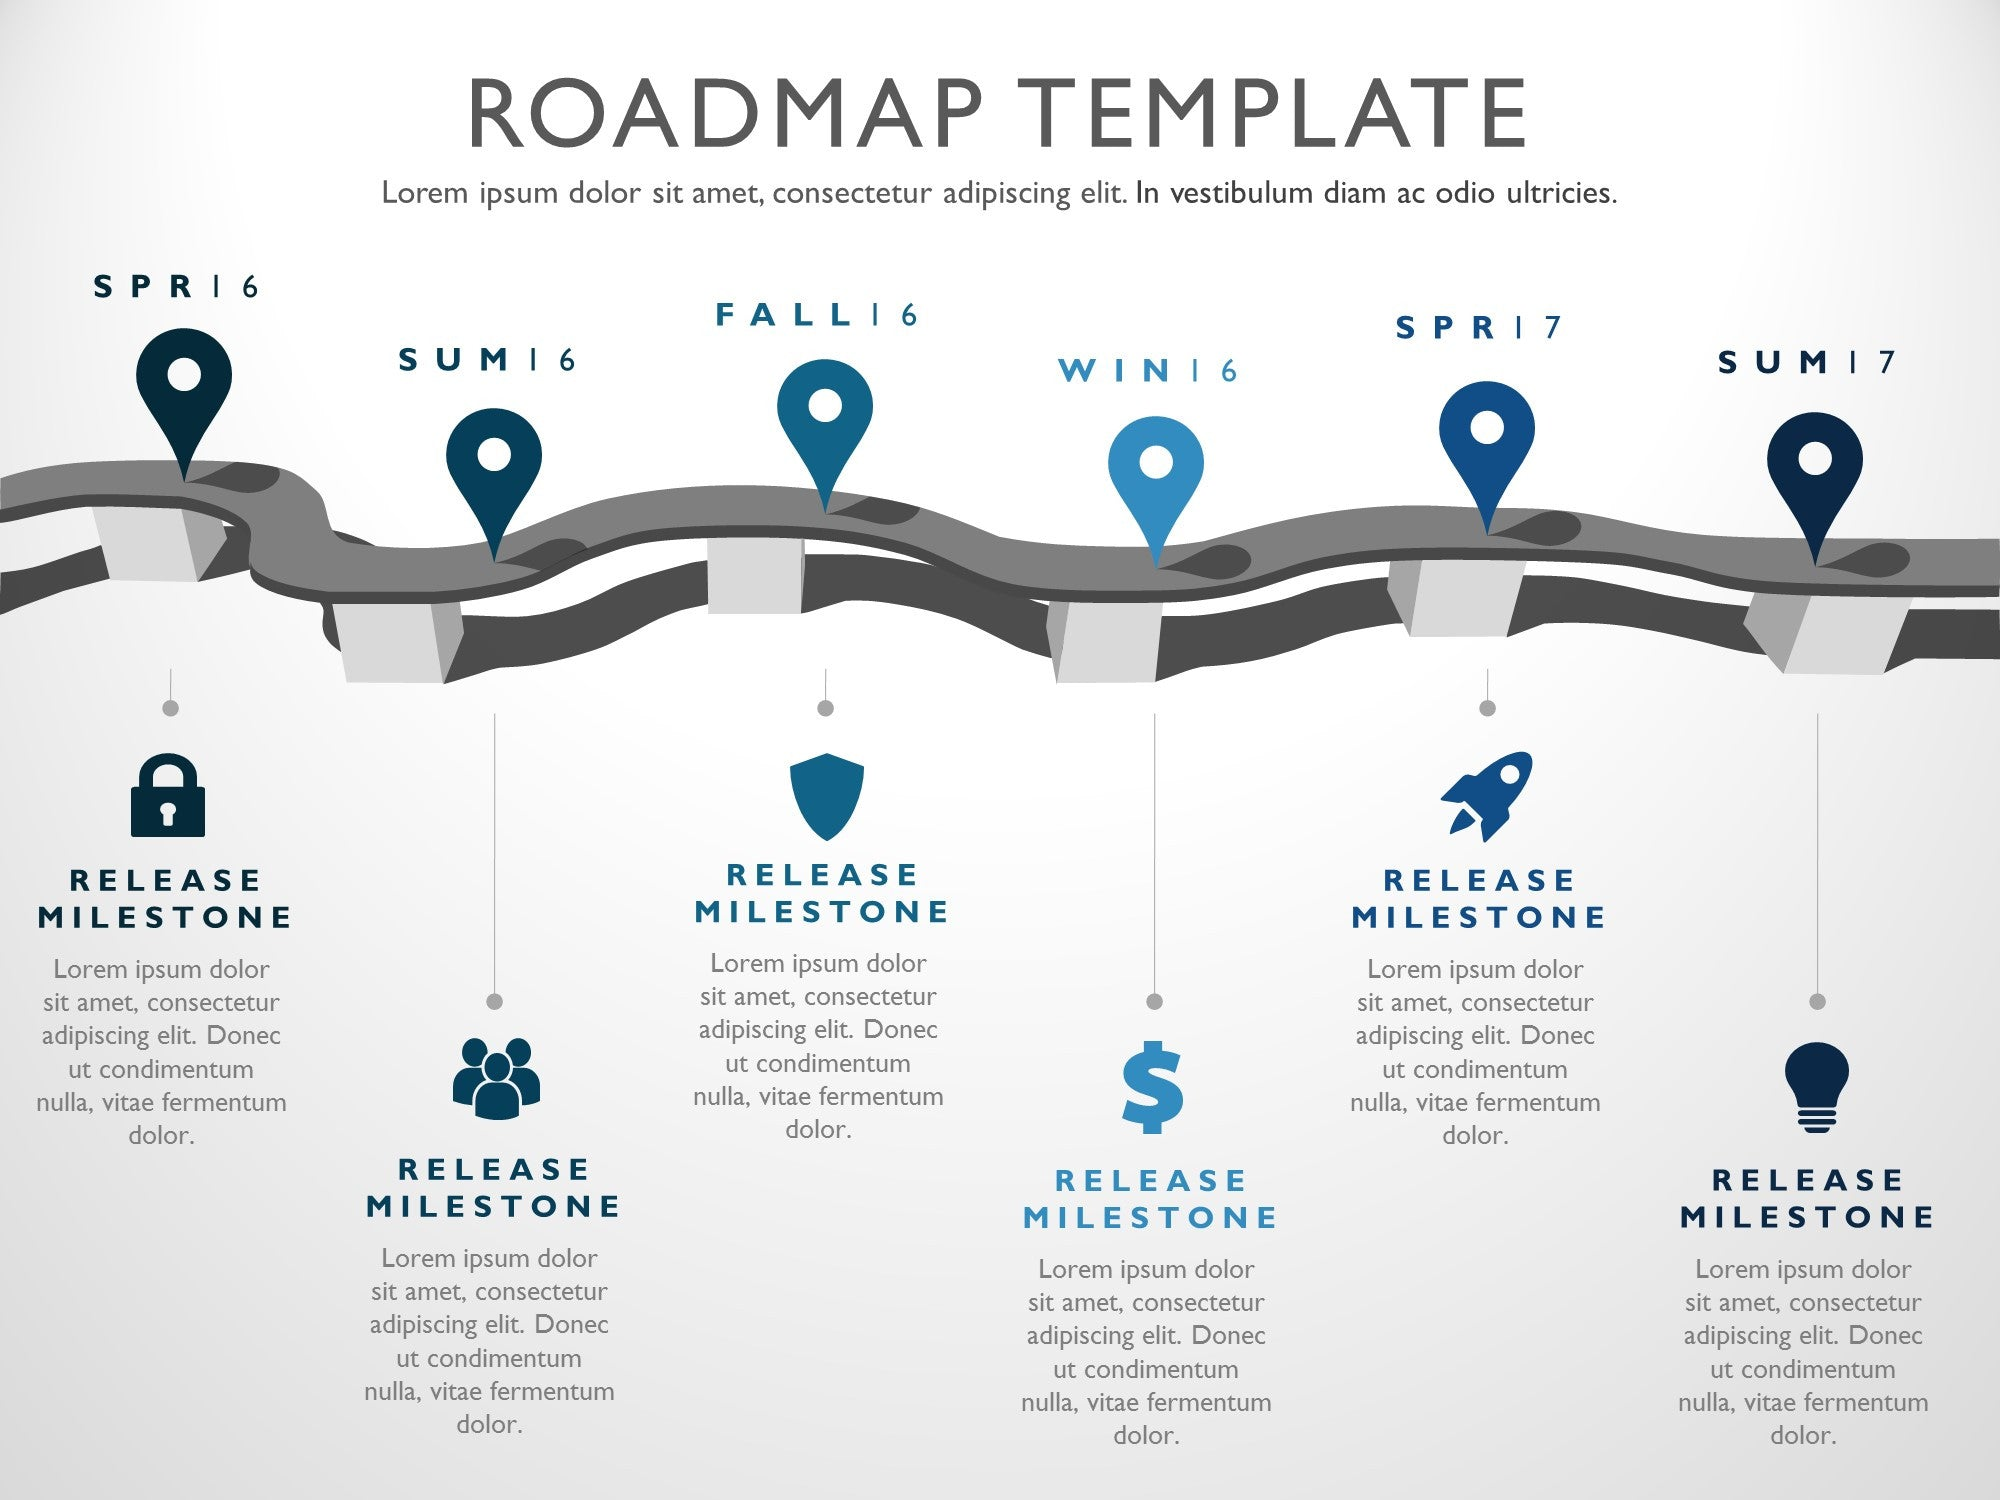 Six phase strategic product timeline roadmap presentation diagram product strategy development cycle planning timeline templates stages software management tools ppt manager marketing roadmap template toneelgroepblik